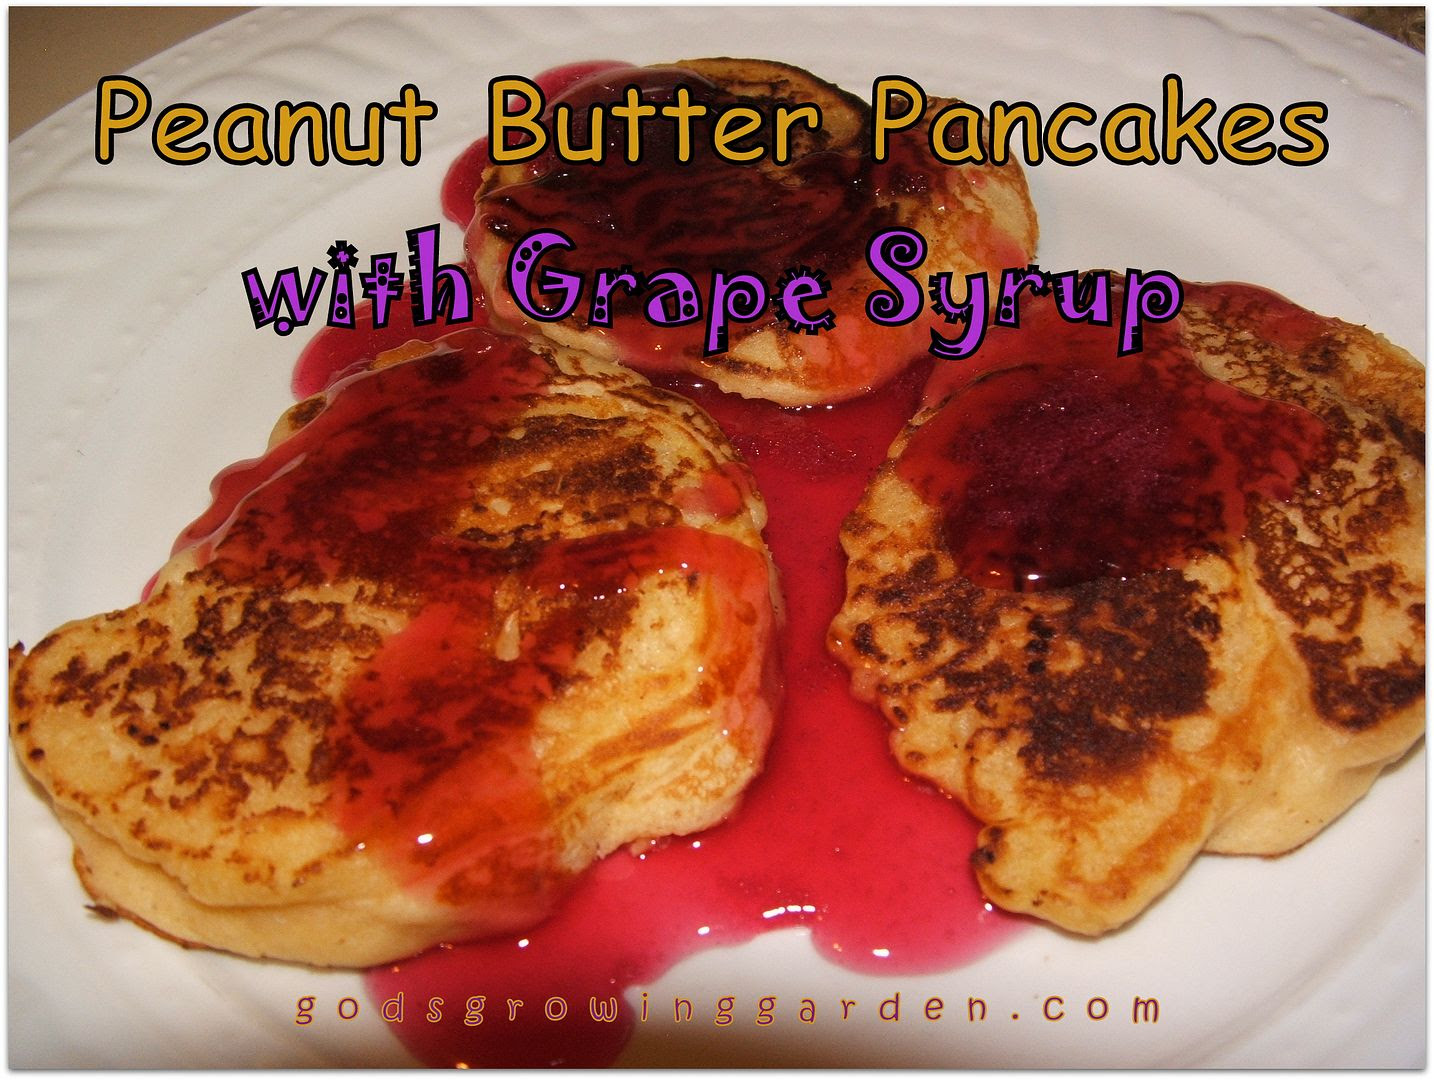 Peanut Butter Pancakes with Grape Syrup by Angie Ouellette-Tower photo 011_zps5f3425ec.jpg